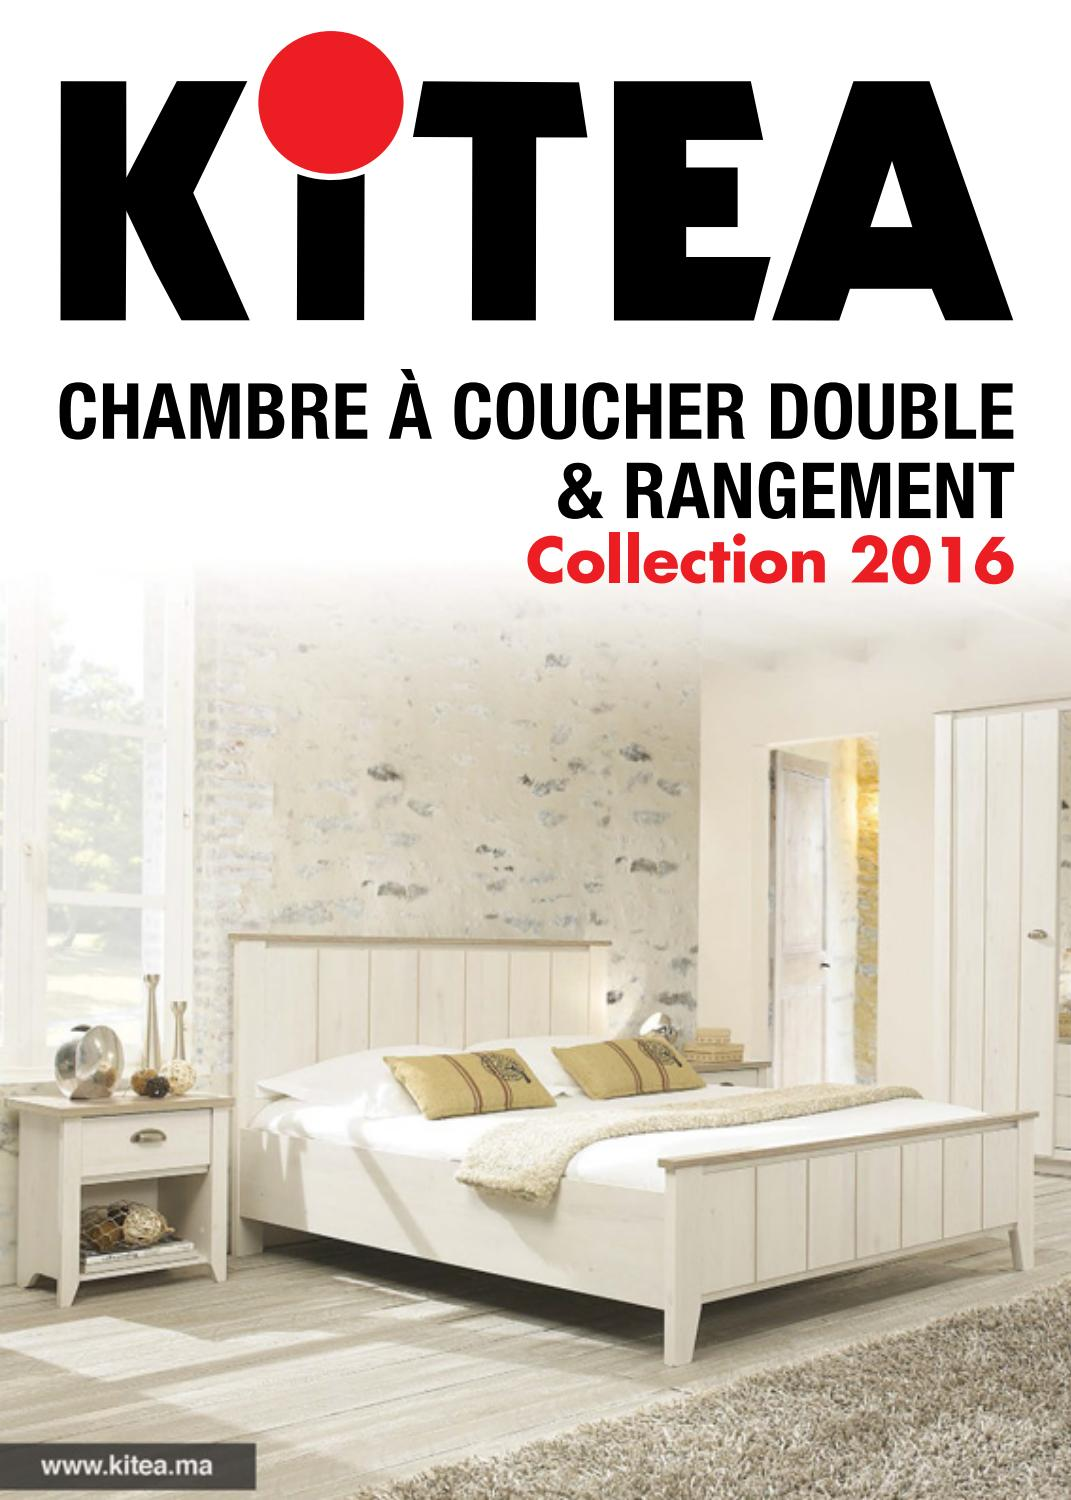 Kitea chambre coucher 2016 by promotion au maroc issuu for Miroir kitea